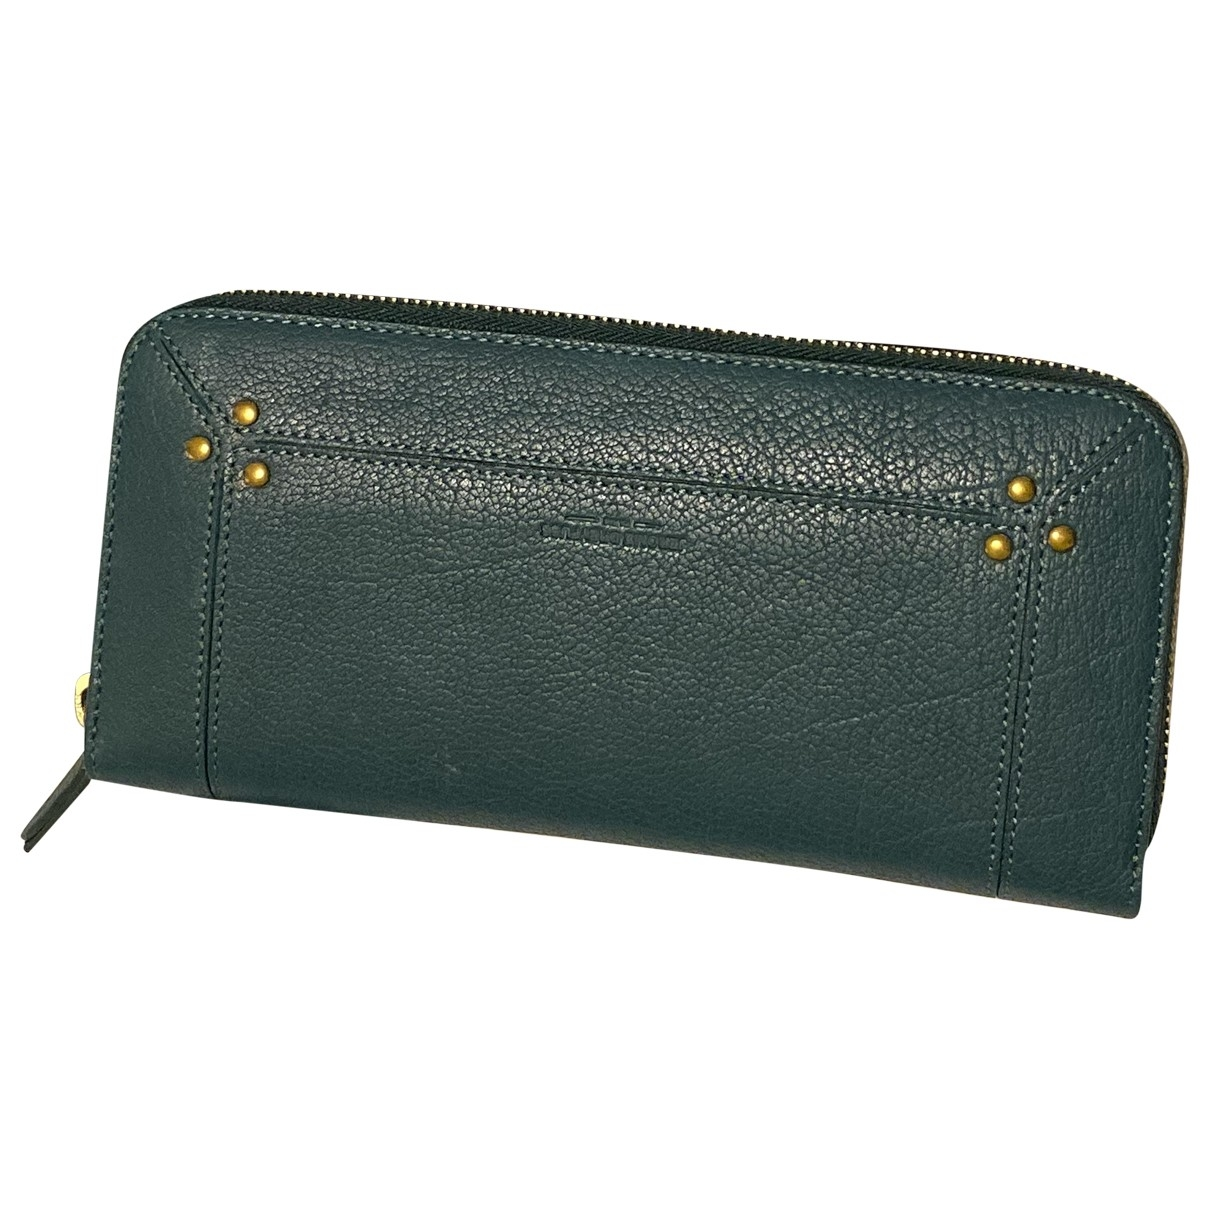 Jerome Dreyfuss \N Clutch in  Tuerkis Leder